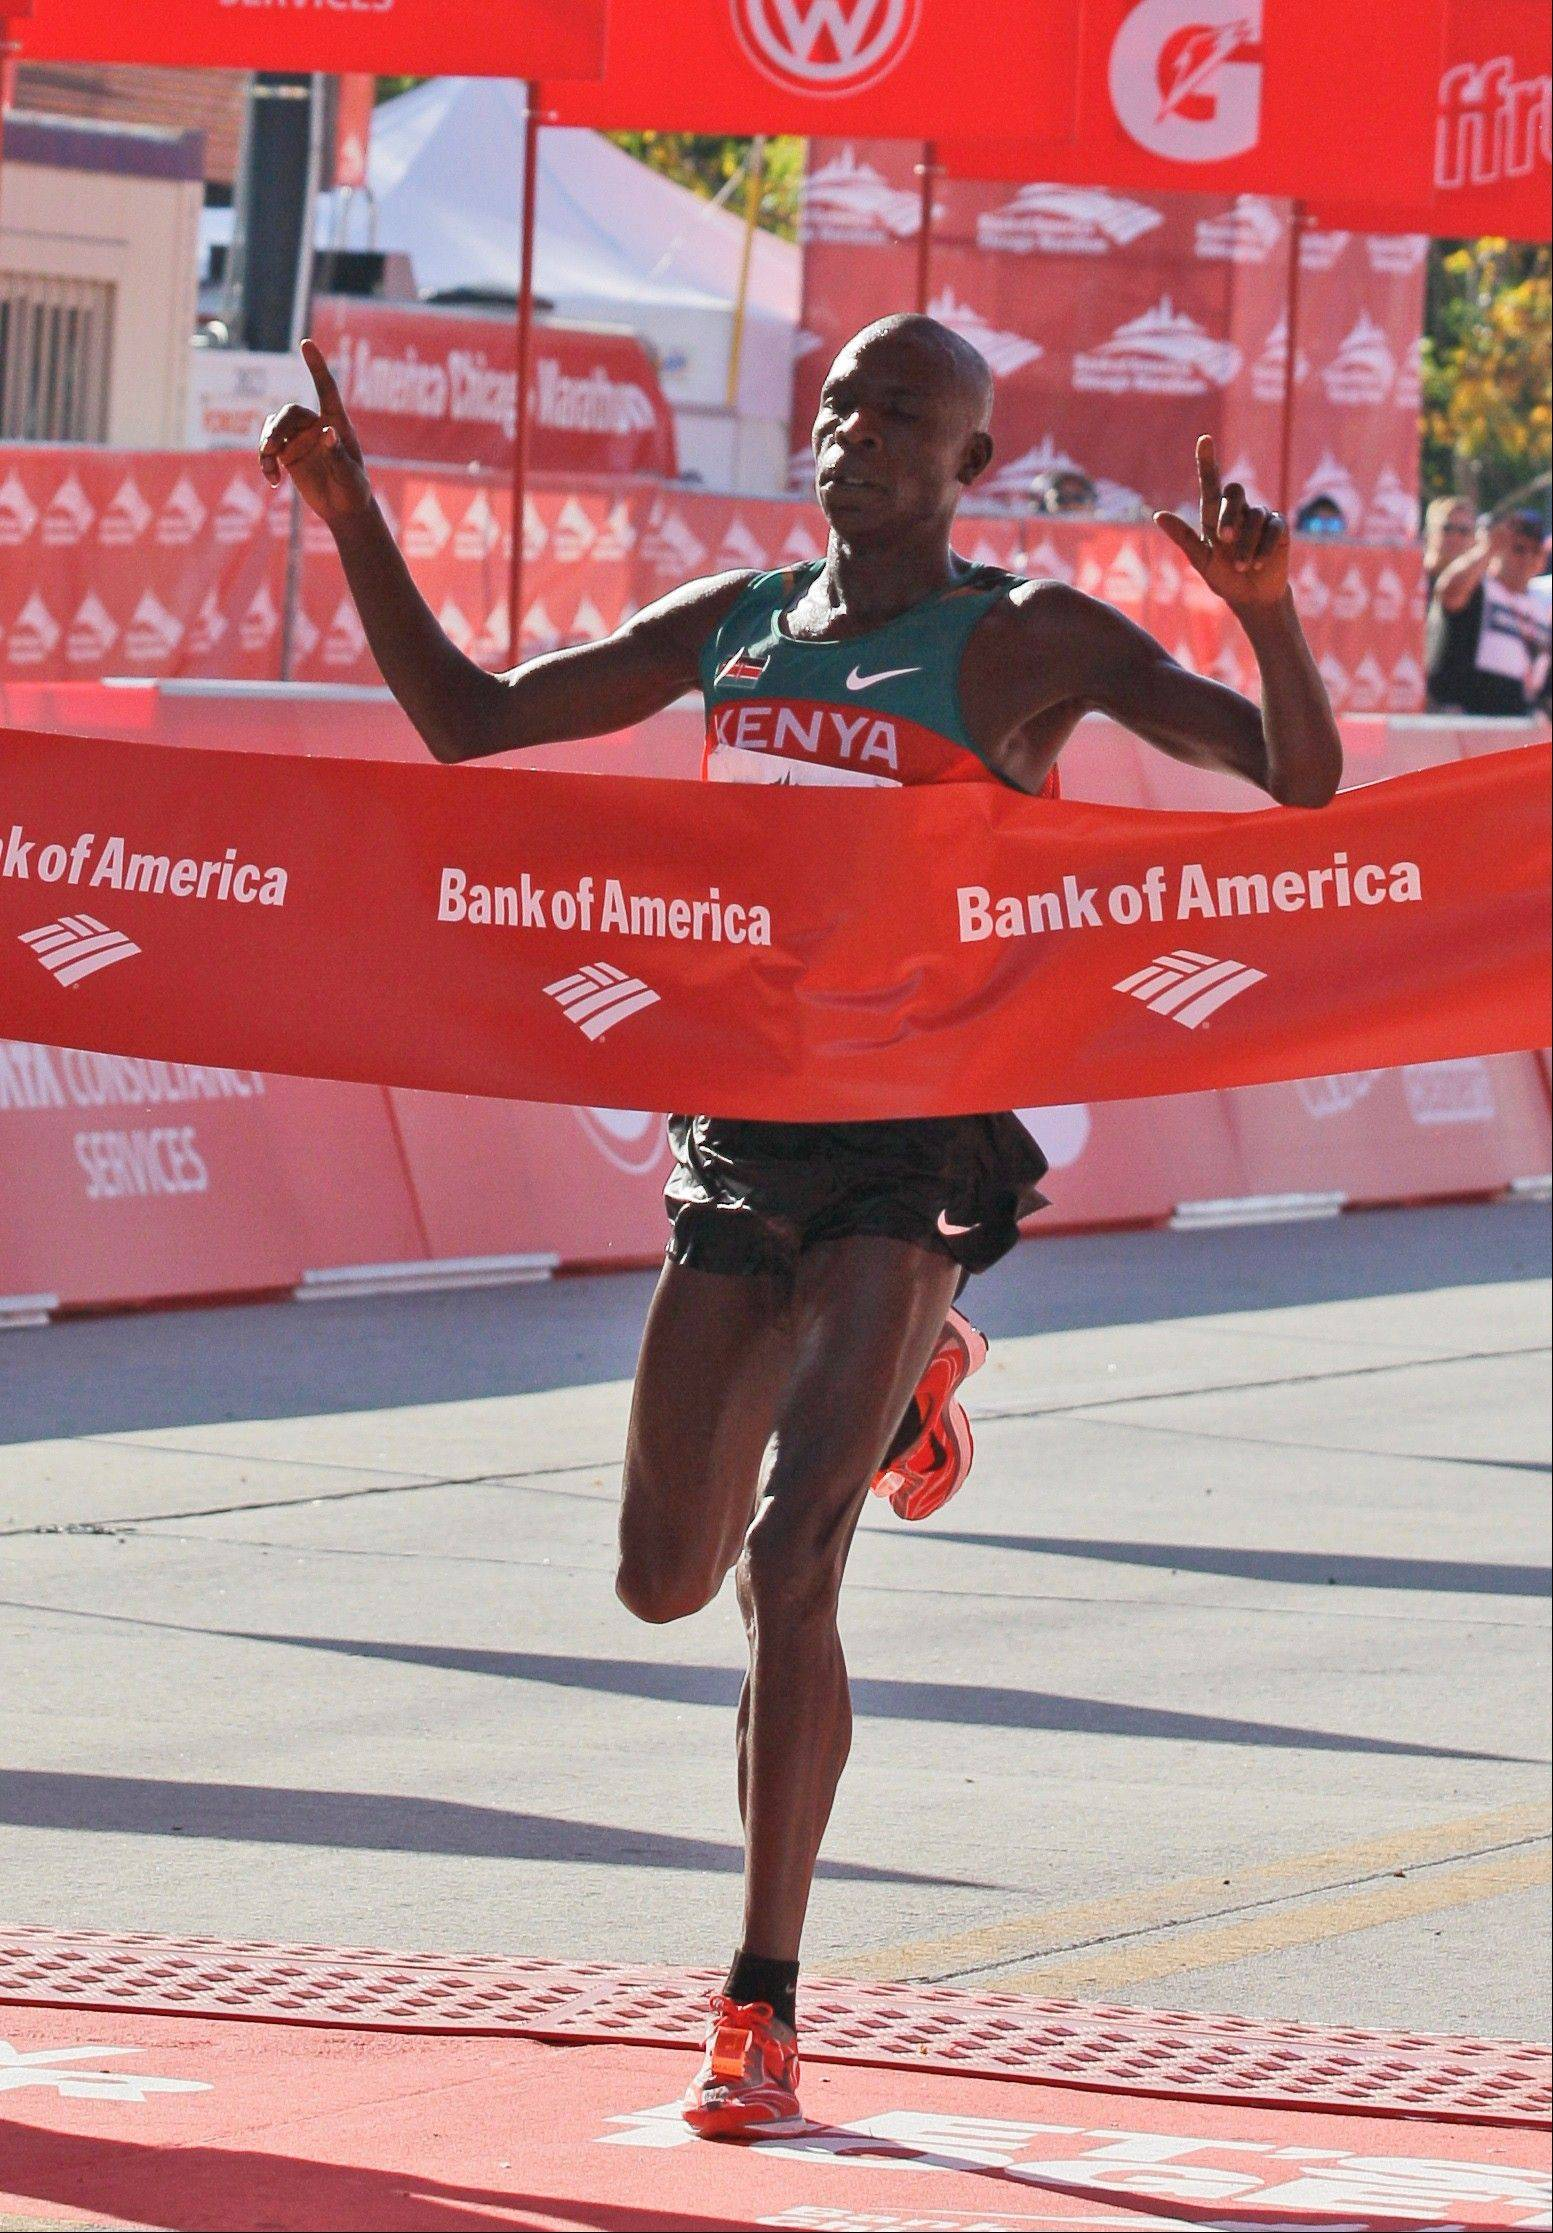 Moses Mosop of Kenya celebrates as he wins the Chicago Marathon in 2011 in record time (2:05:37). Last year, Ethiopia's Tsegaye Kebede set a new record (2:04:38).